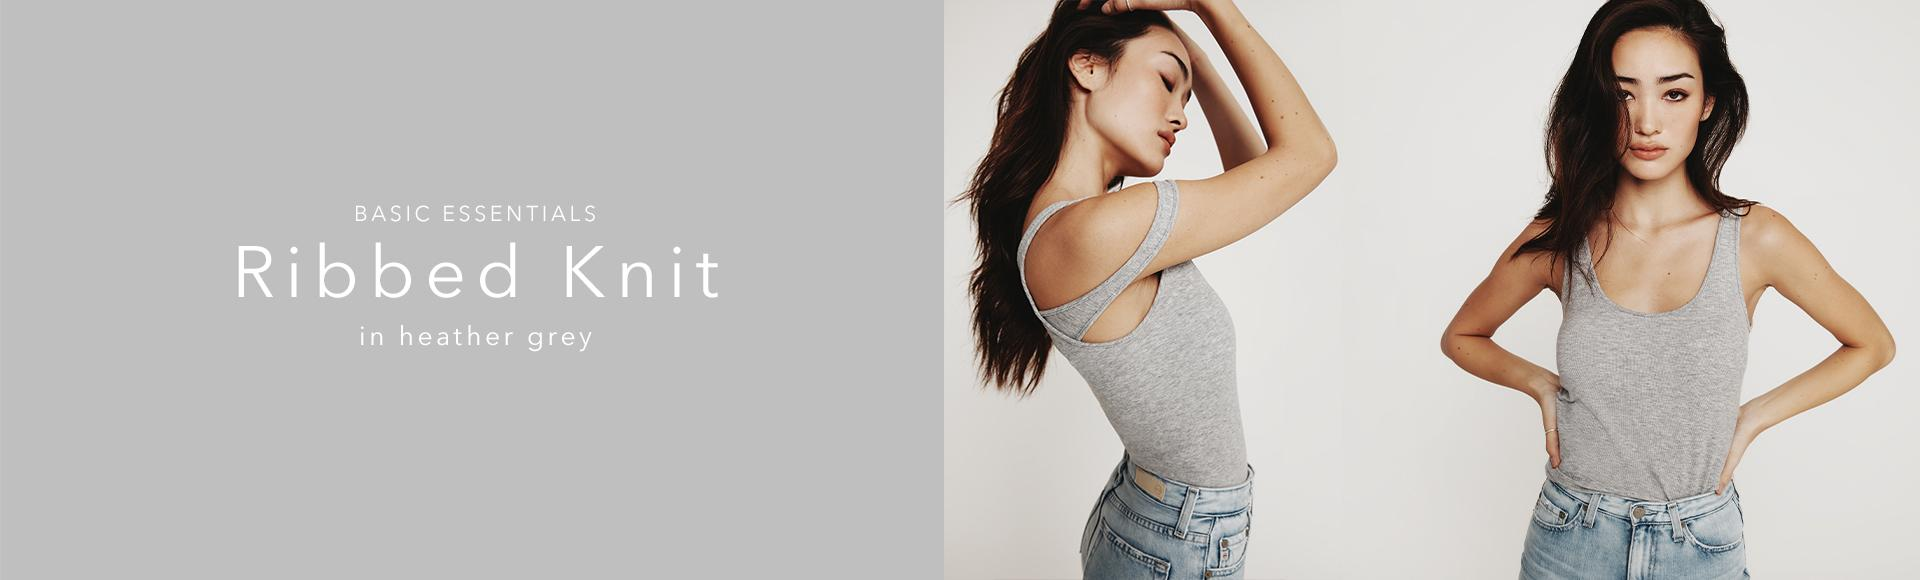 Ribbed Knit welcomes a remarkable heather grey hue in 20 silhouettes